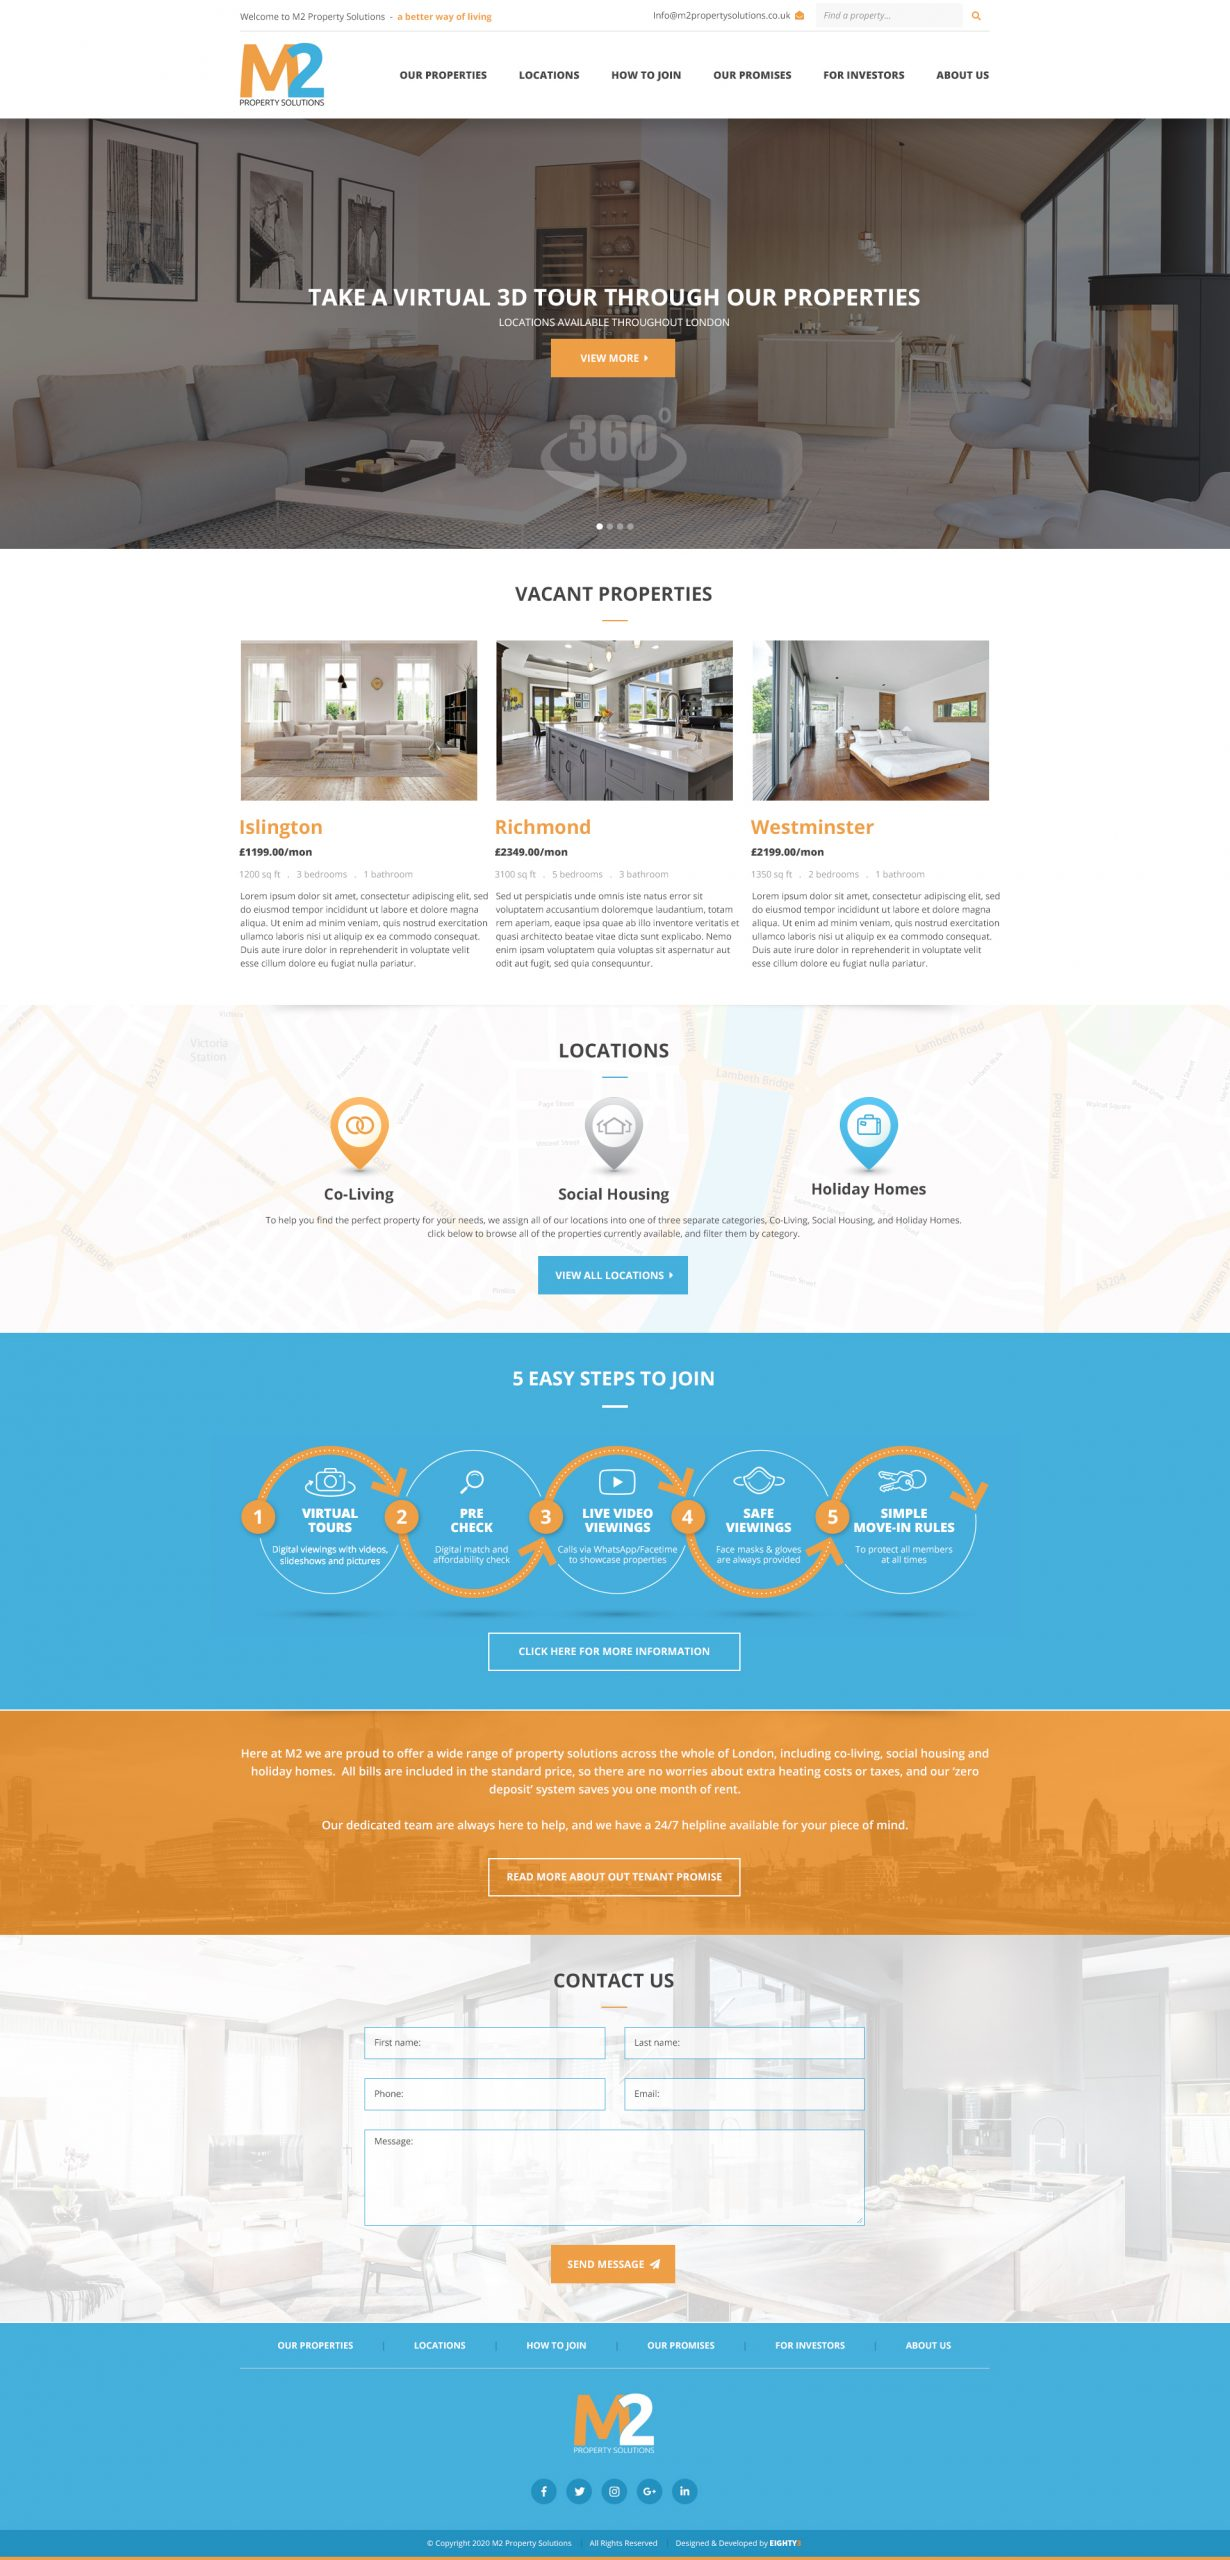 M2 Property Solutions - Web Design and Insightly Integration